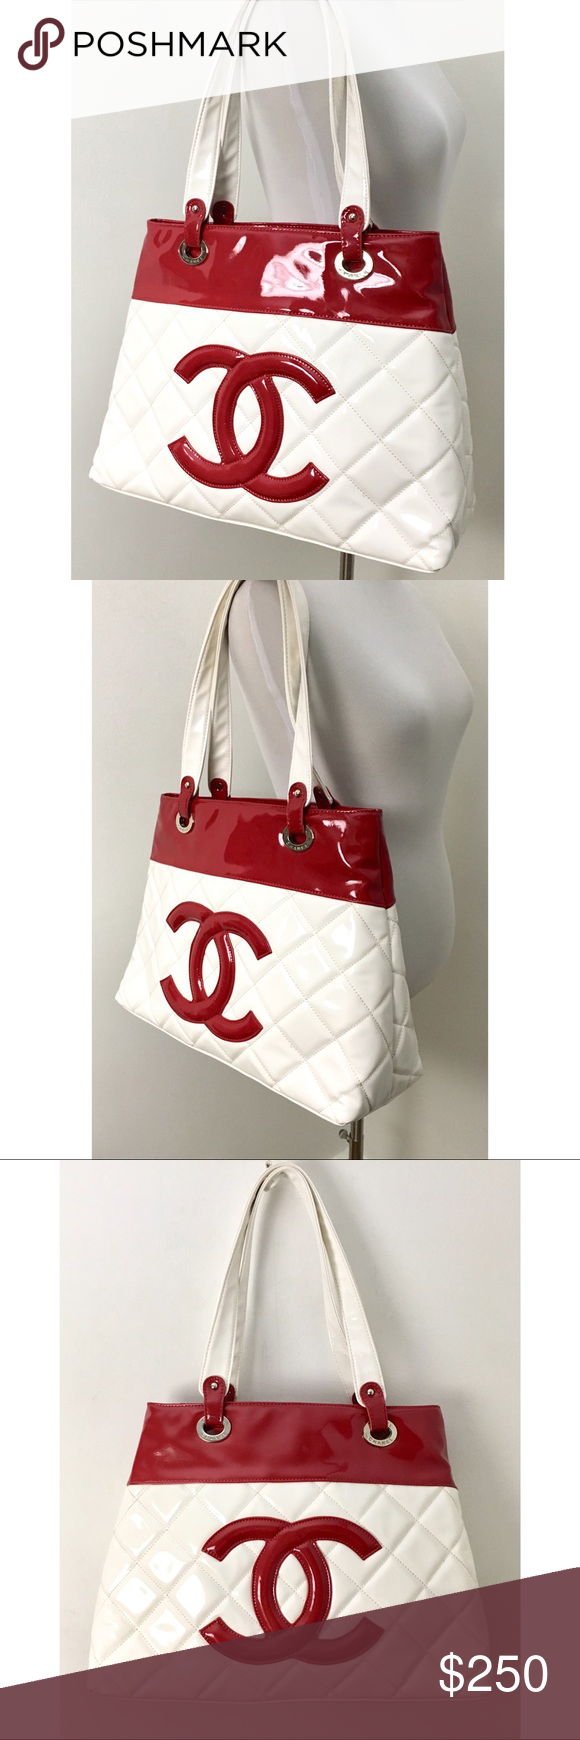 Chanel Vip Large Patent Logo Tote Xl Red White Patent Leather Chanel